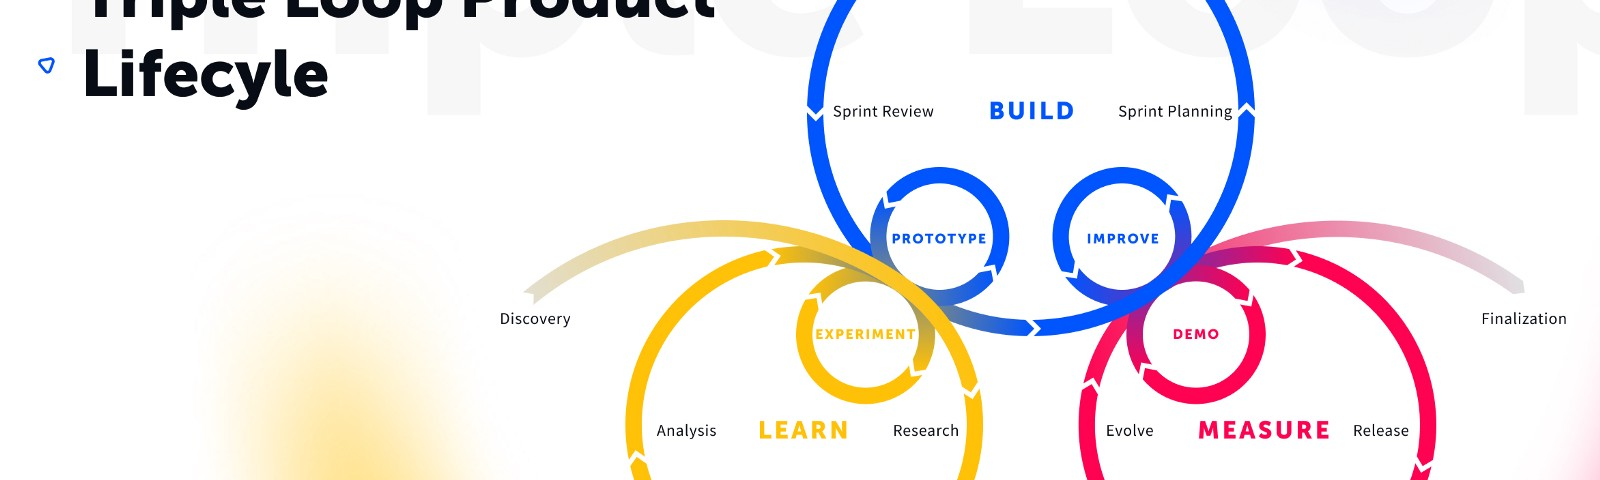 Triple Loop Product Lifecycle with Learn, Prototype, Experiment, Build, Demonstrate, Improve, Measure and Learn again Phases